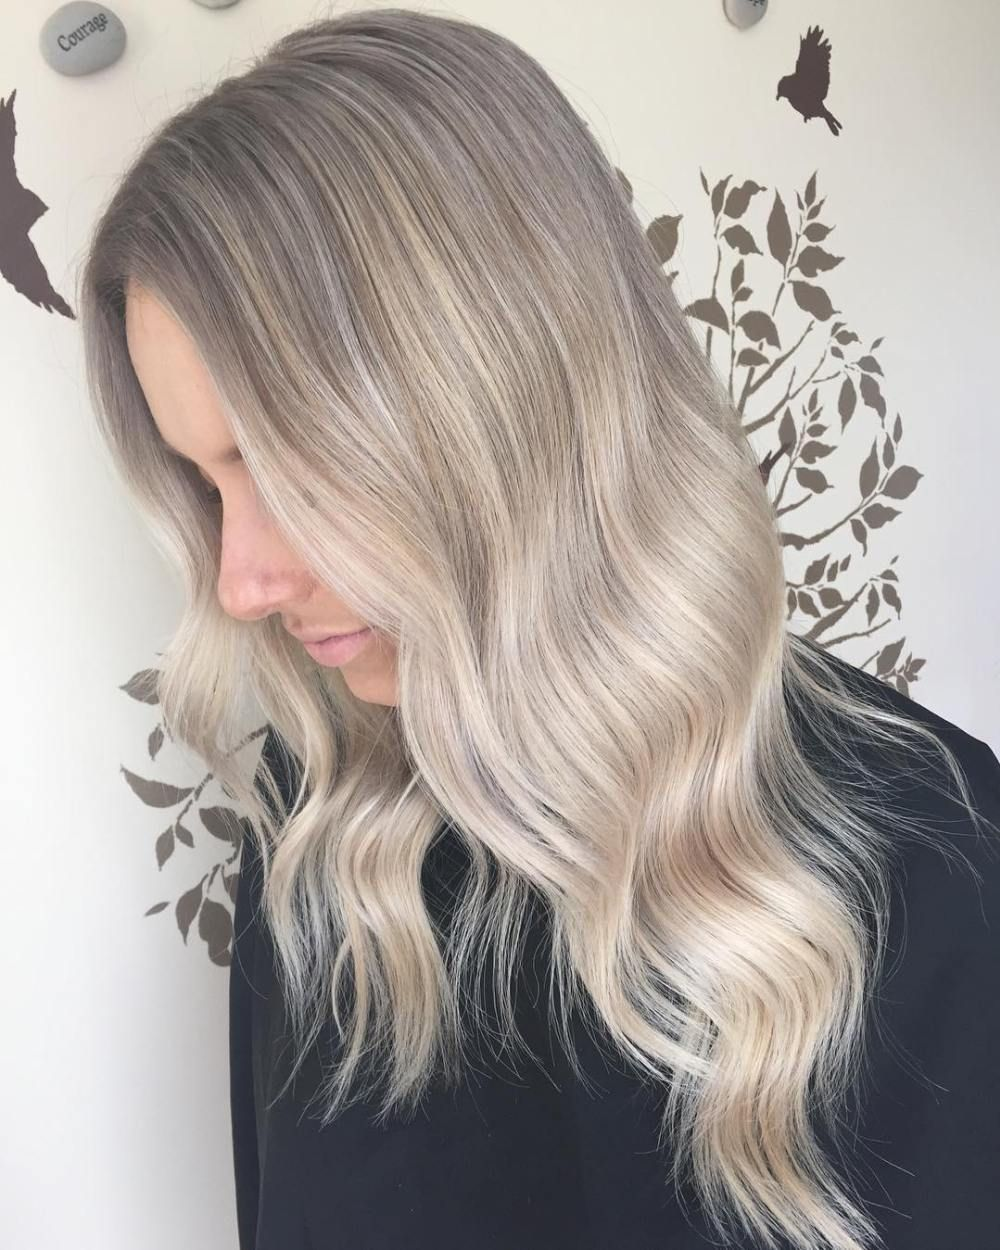 40 Ash Blonde Hair Looks You'll Swoon Over #ashblondebalayage